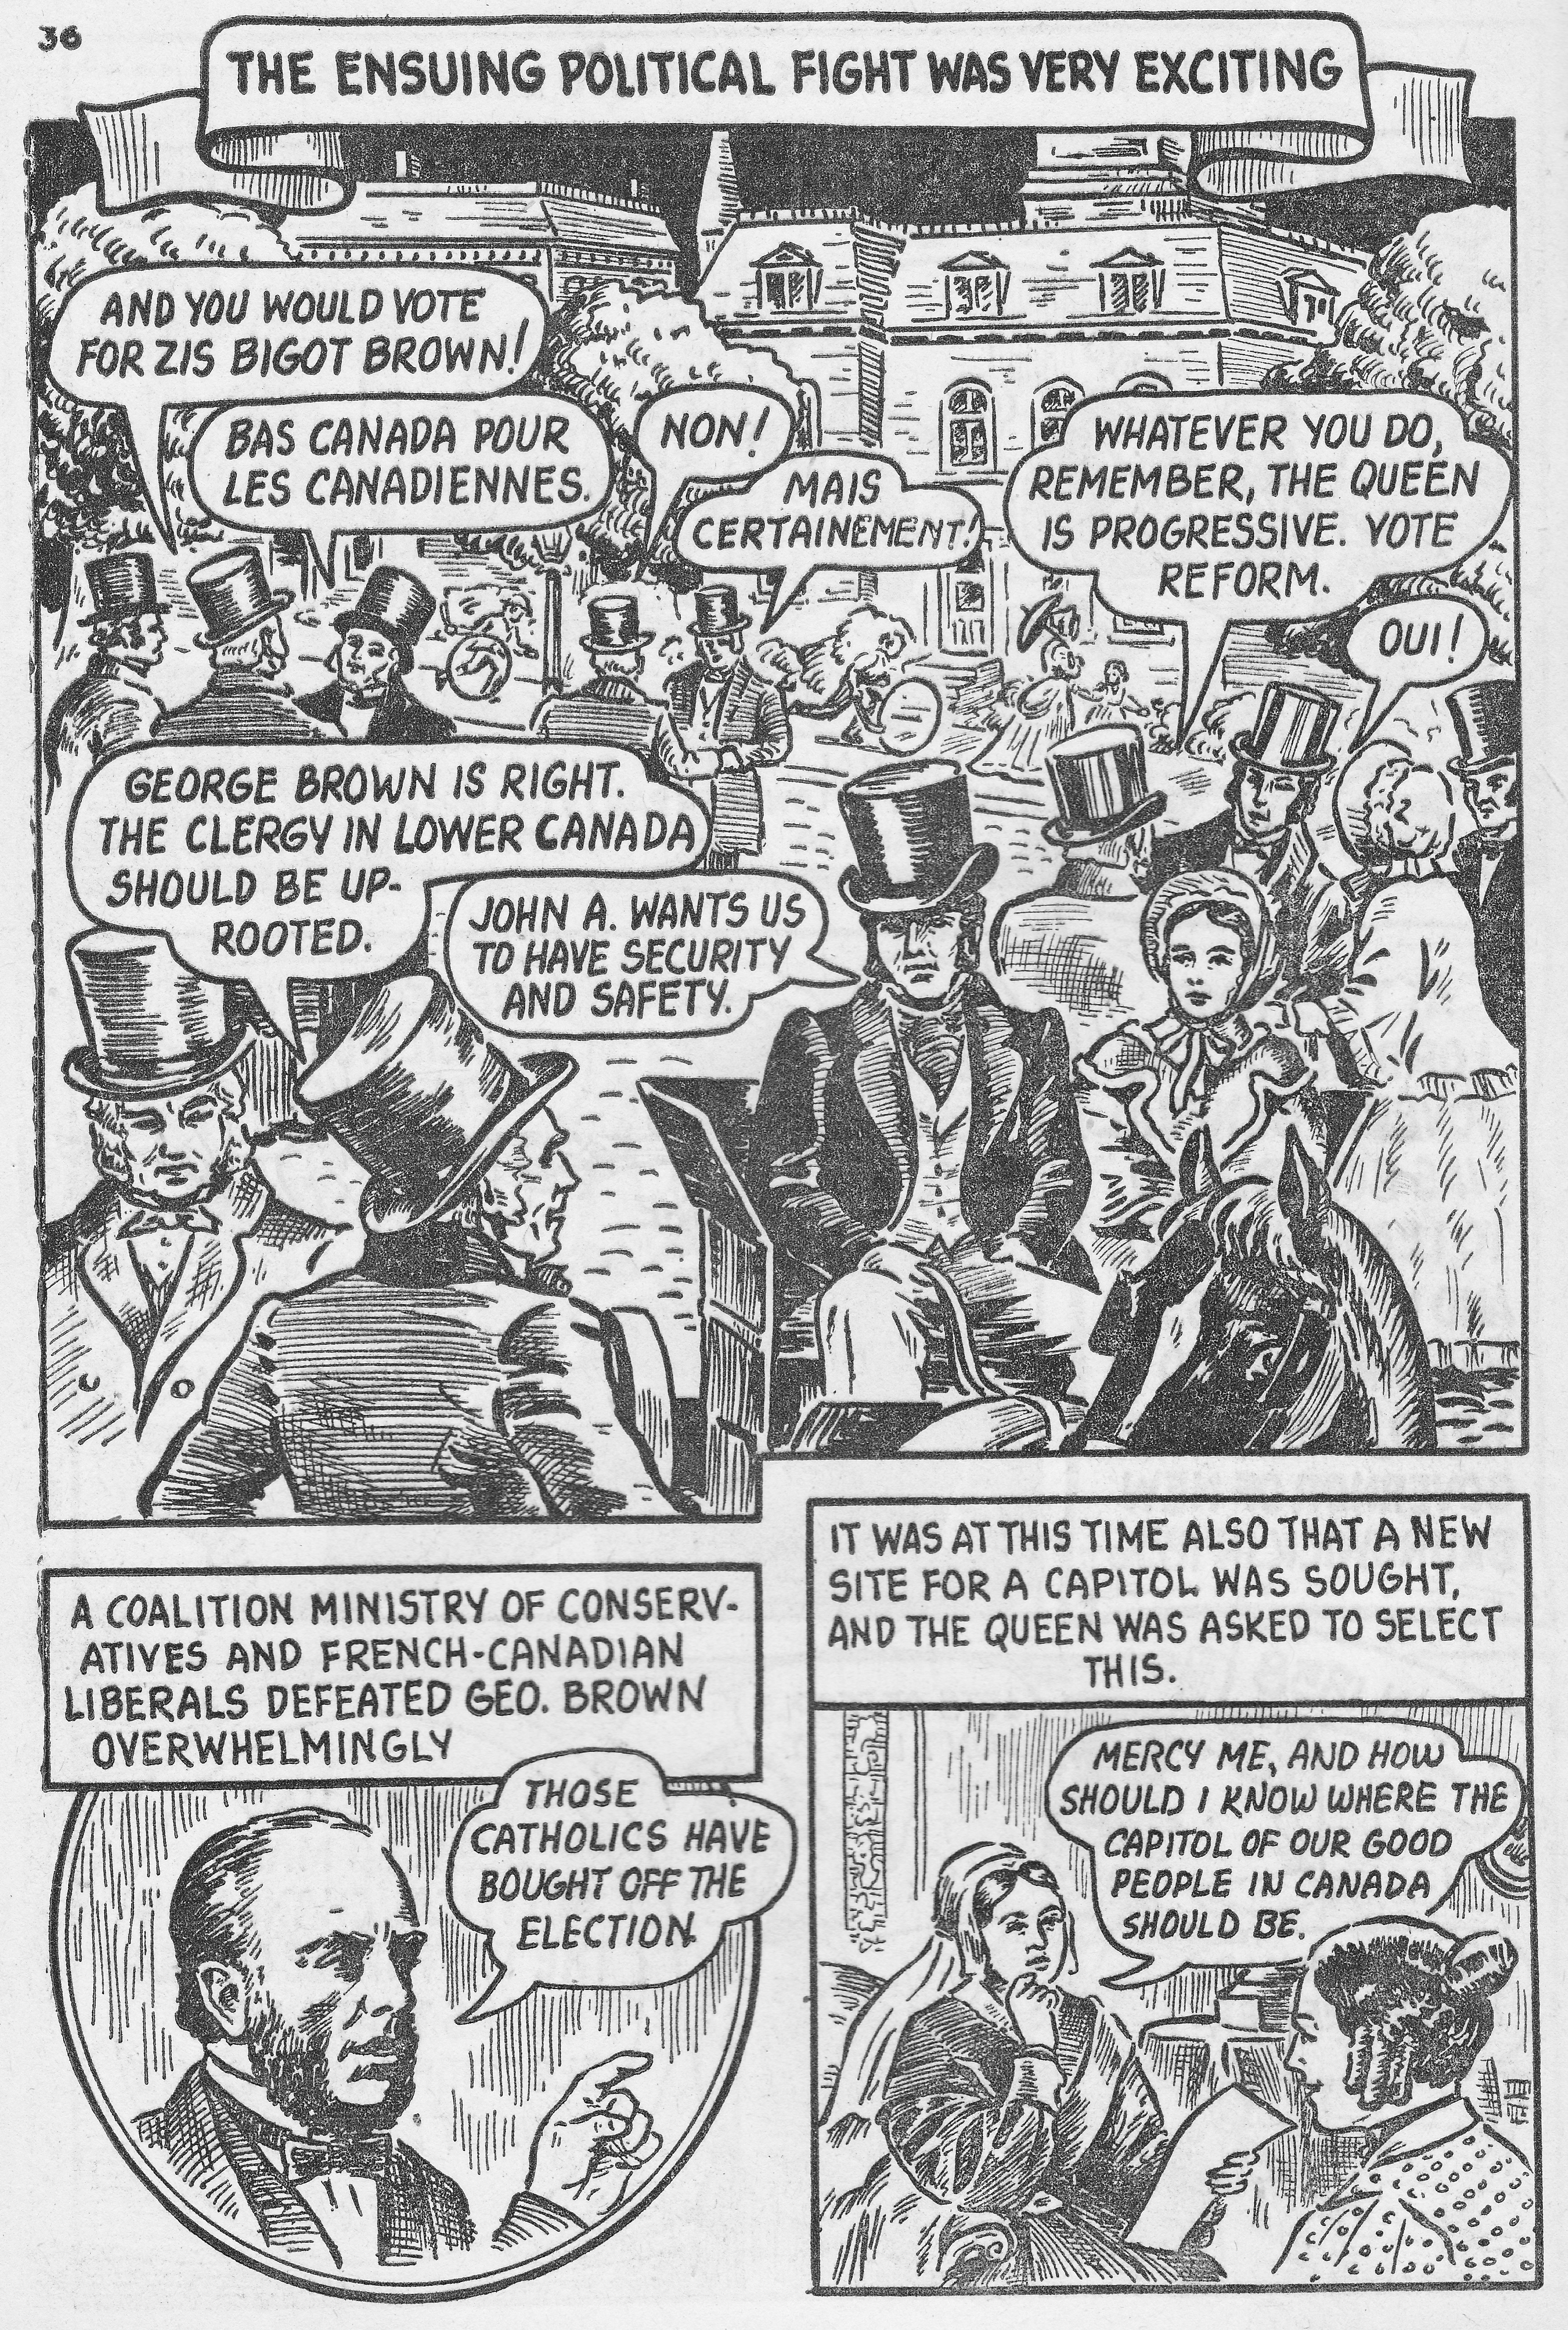 C:\Users\Robert\Documents\CARTOONING ILLUSTRATION ANIMATION\IMAGE CARTOON\IMAGE CARTOON S\STORY,HISTORY OFCANADA, Canadian Heroes, 4-6, Jan 1945, 36 .jpg